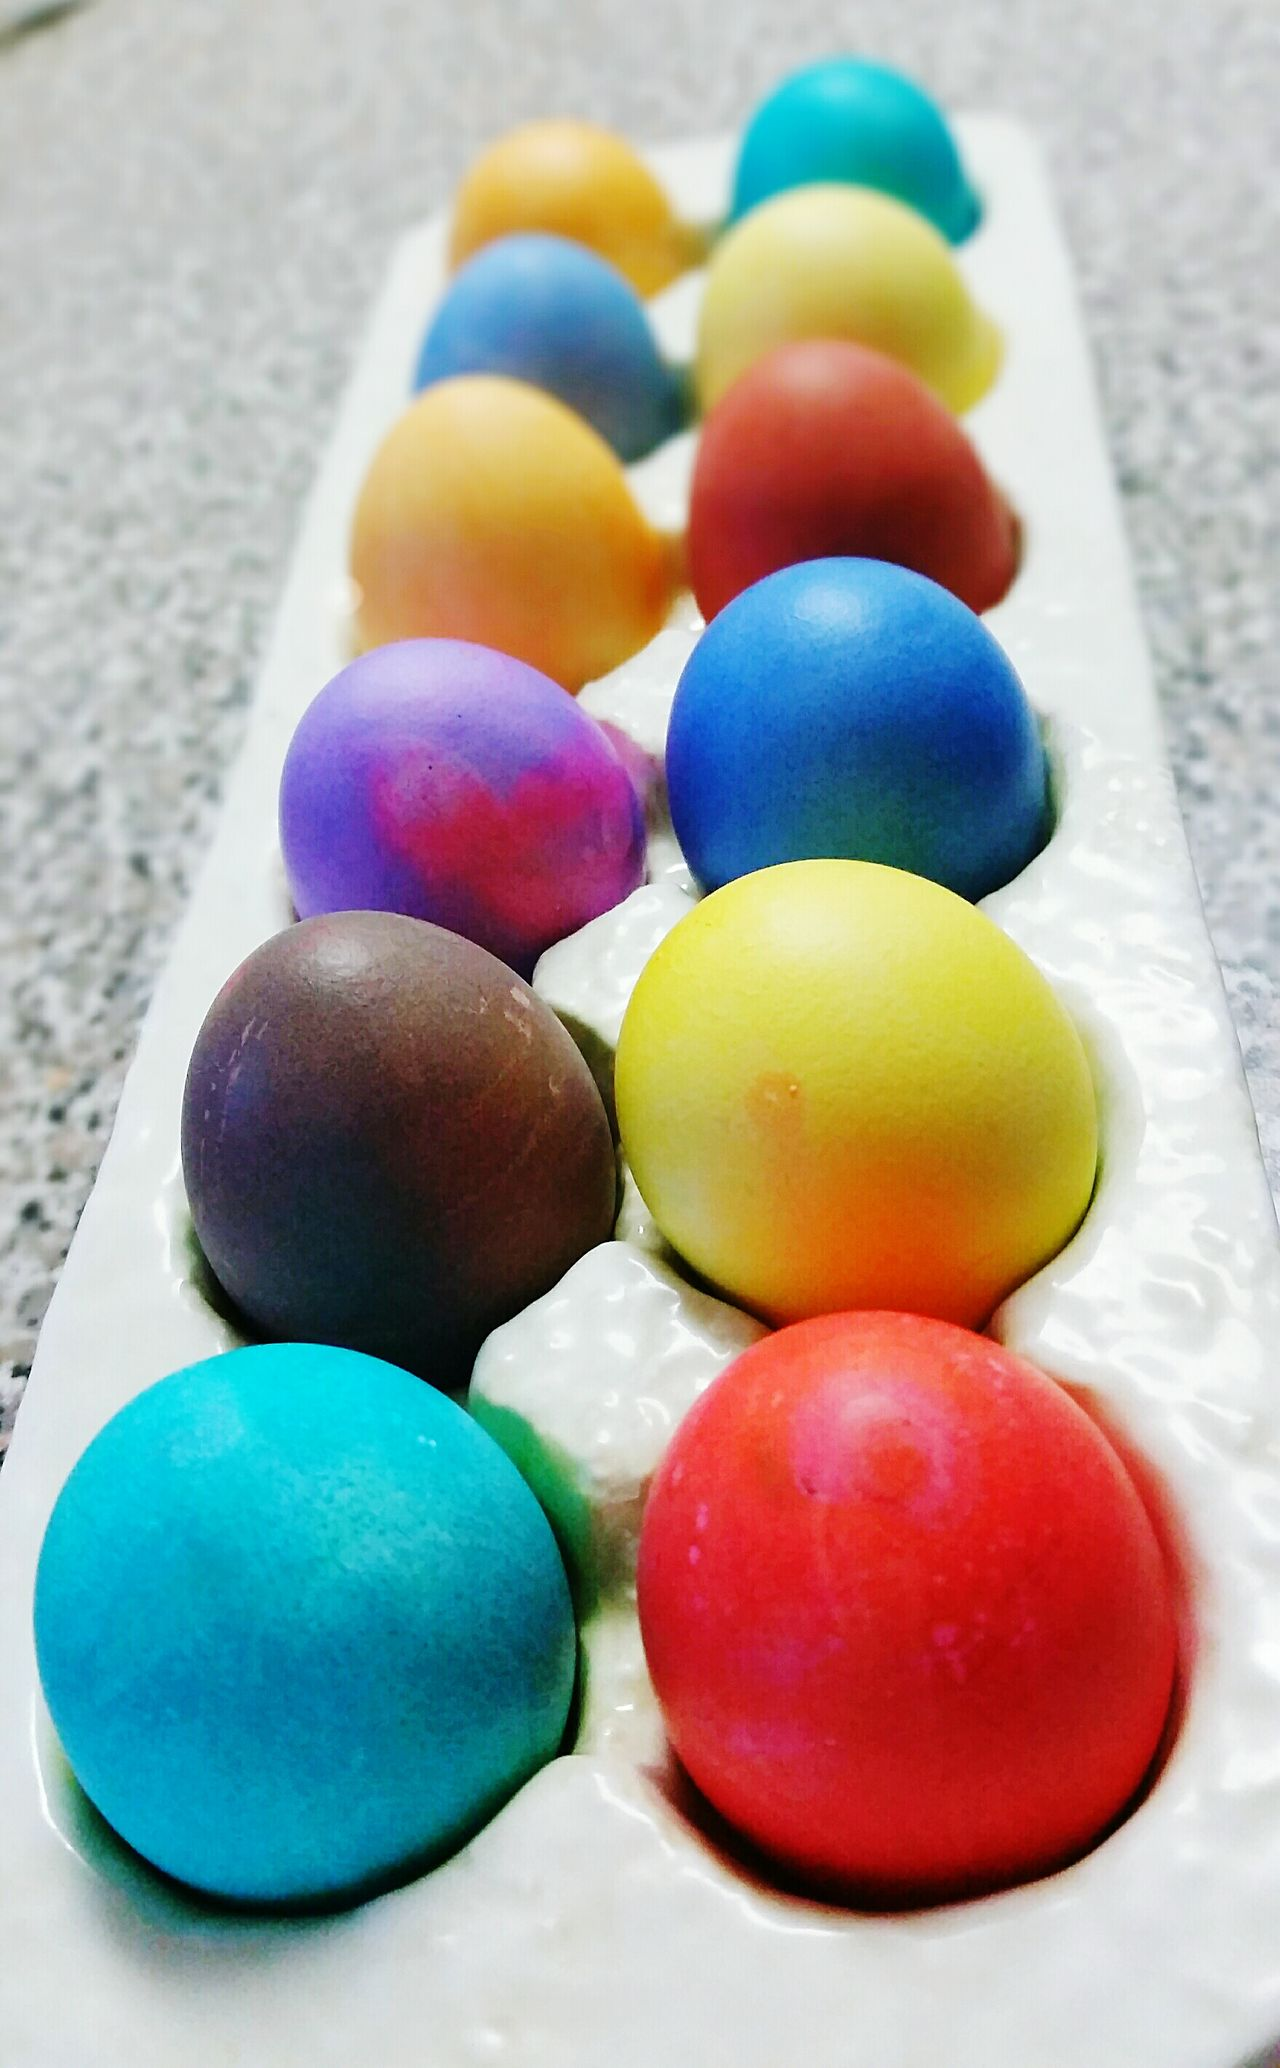 Happy Easter! Easter Eggs Beautiful Colors Rainbow Fun Vibrant Bright Easter Ready